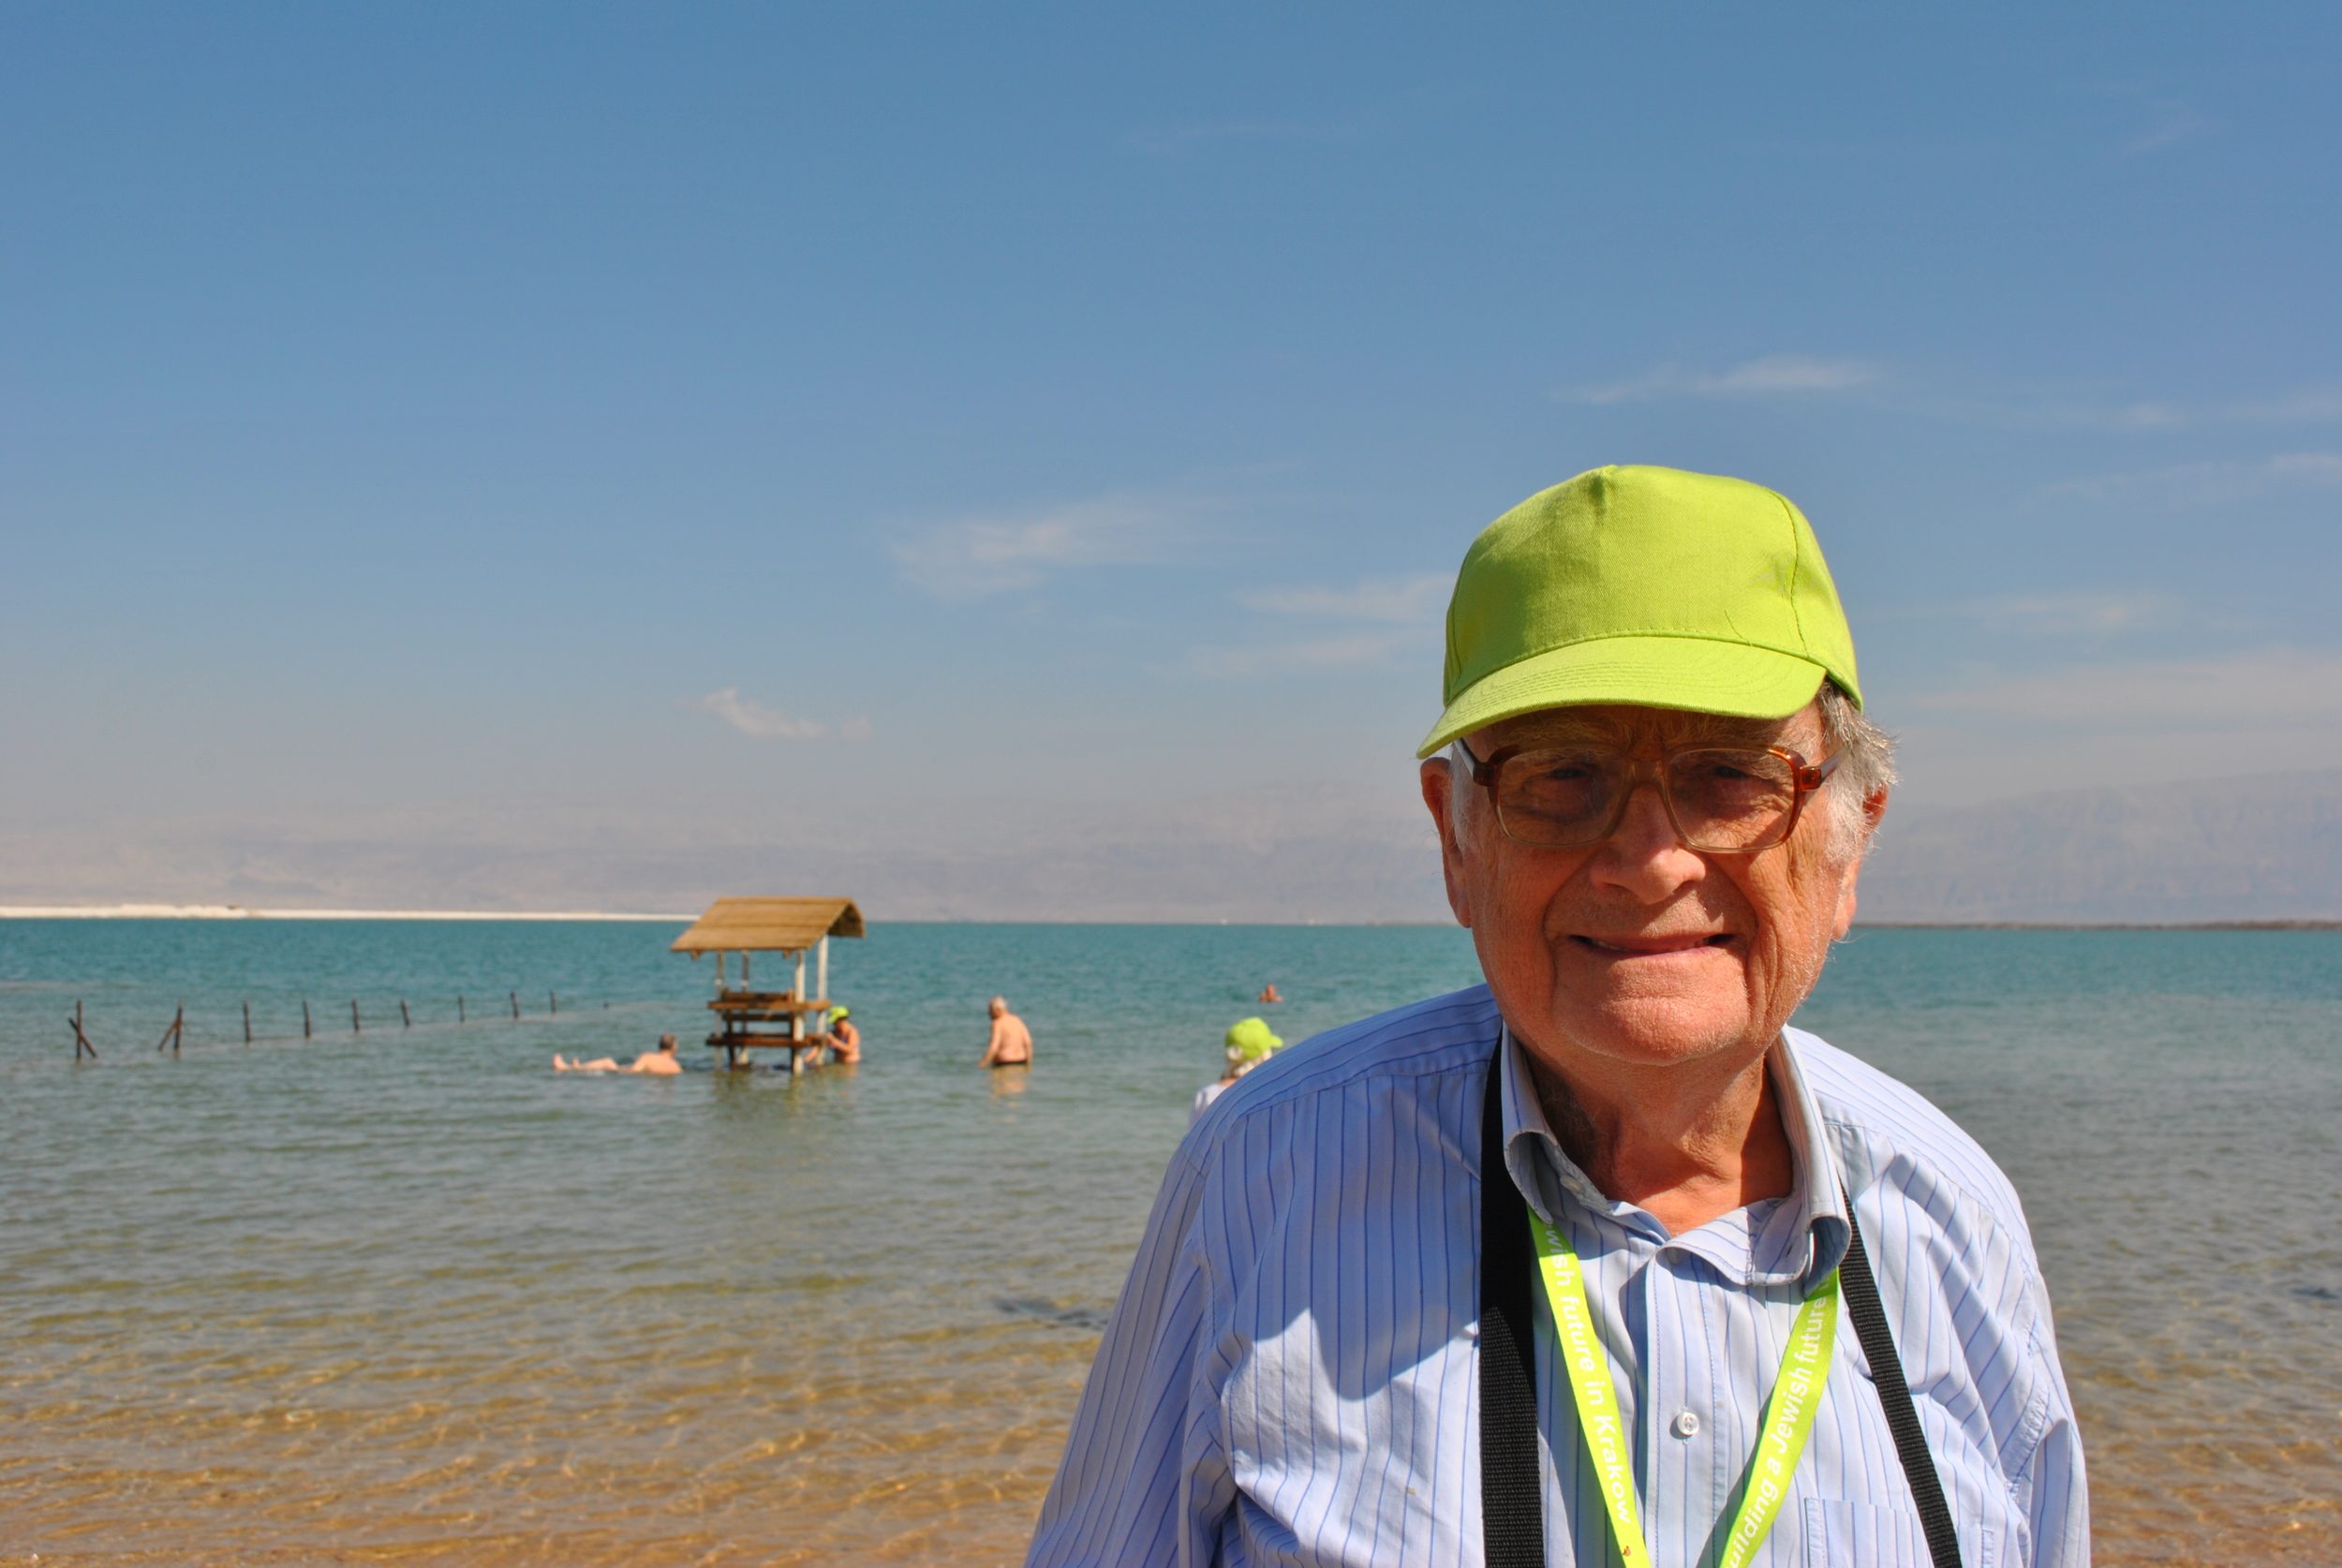 Jan, enjoying the breeze at the Dead Sea for the first time.